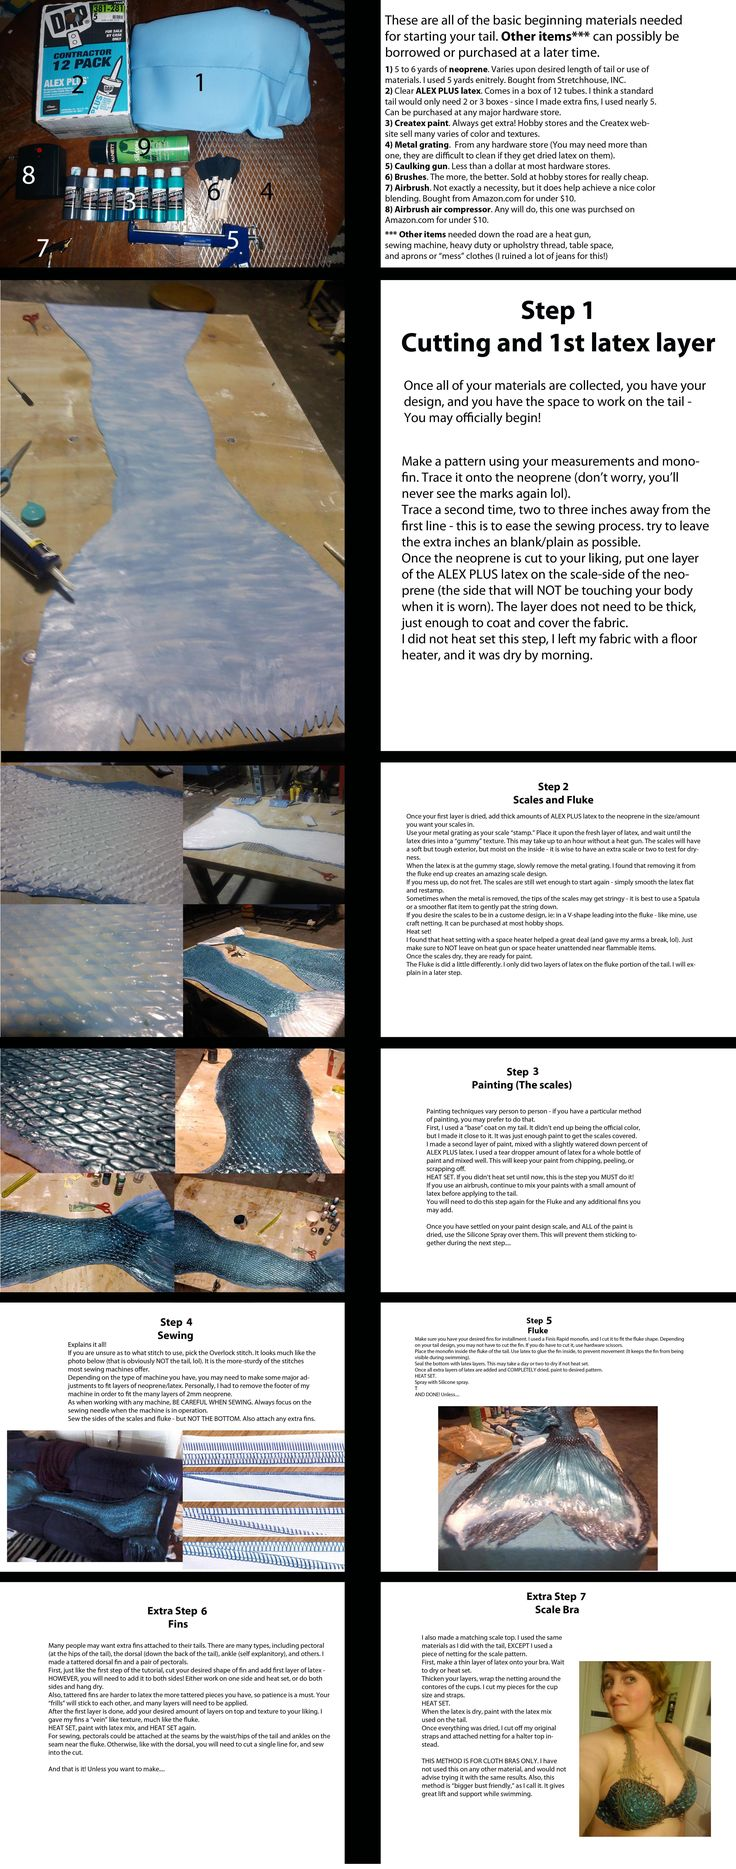 How to make a mermaid tail out of neoprene and latex!!!